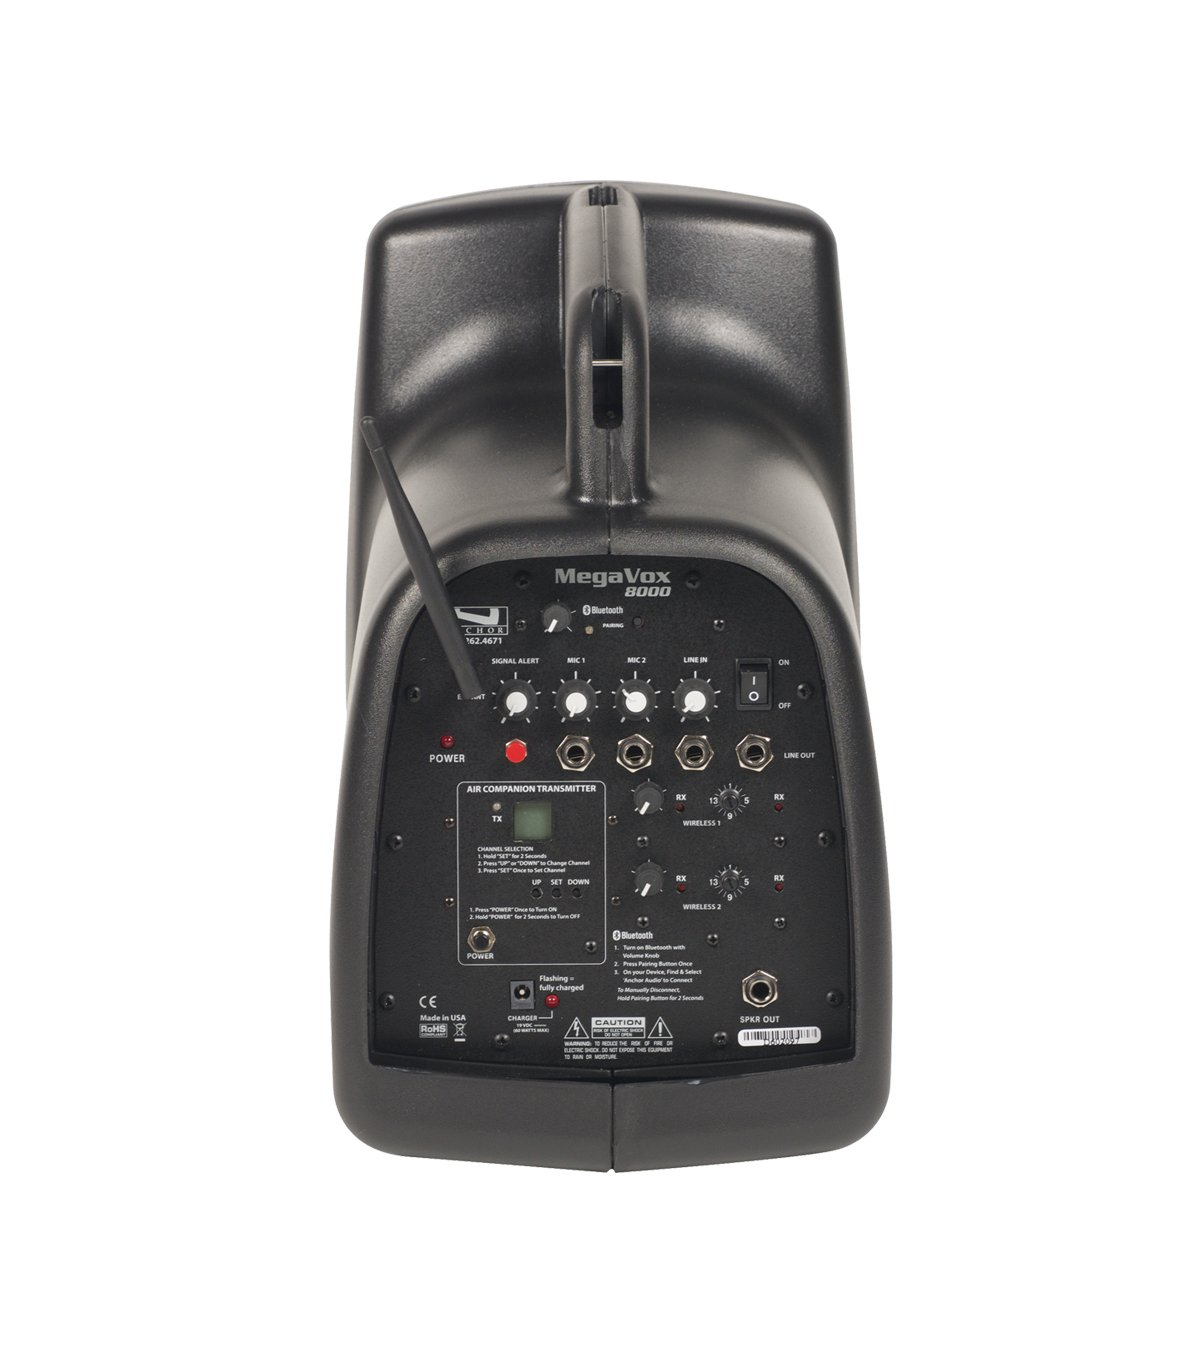 Megavox Basic Package with 16 RF Channels and Wireless HandHeld Microphone